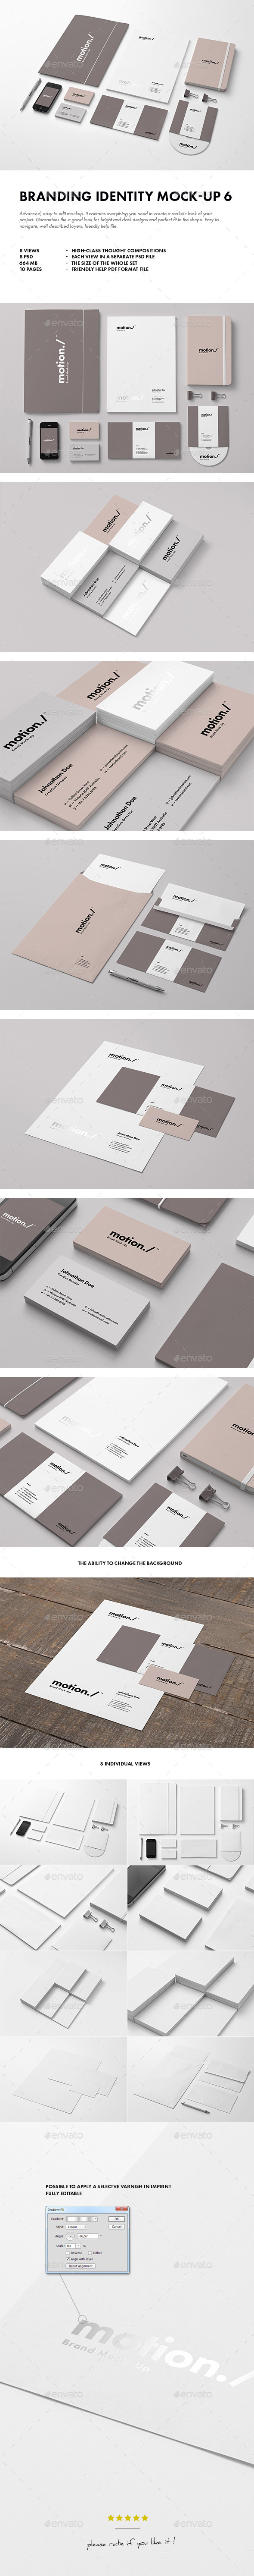 Branding / Identity Mock-up 6 (Stationery)